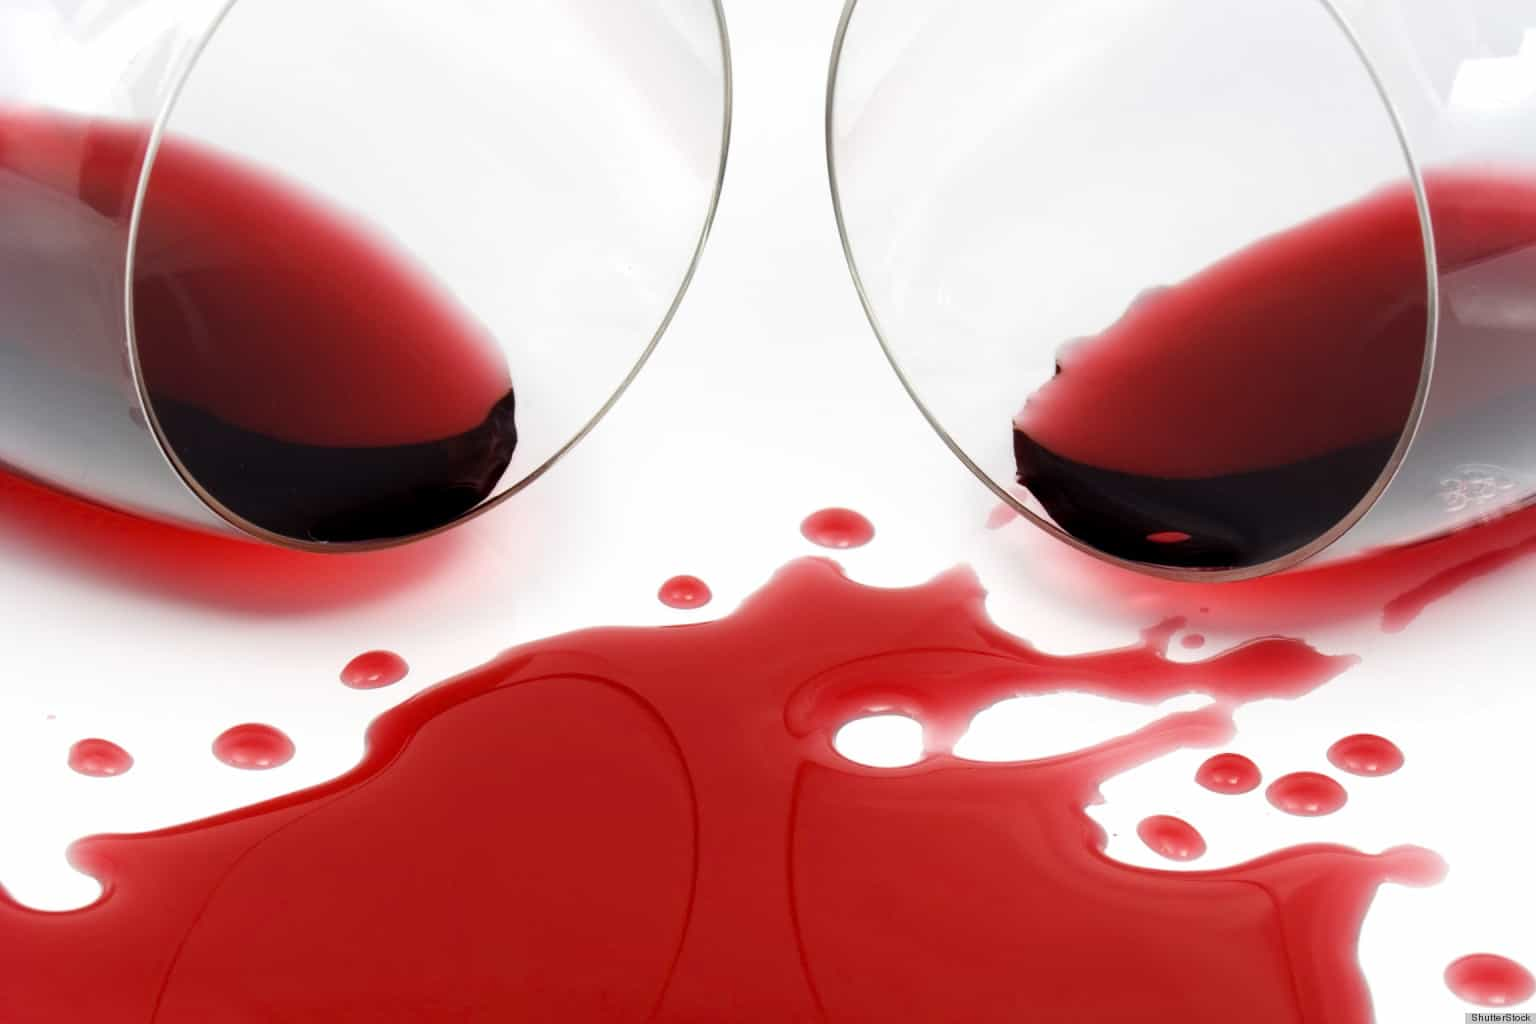 Getting rid of wine stains